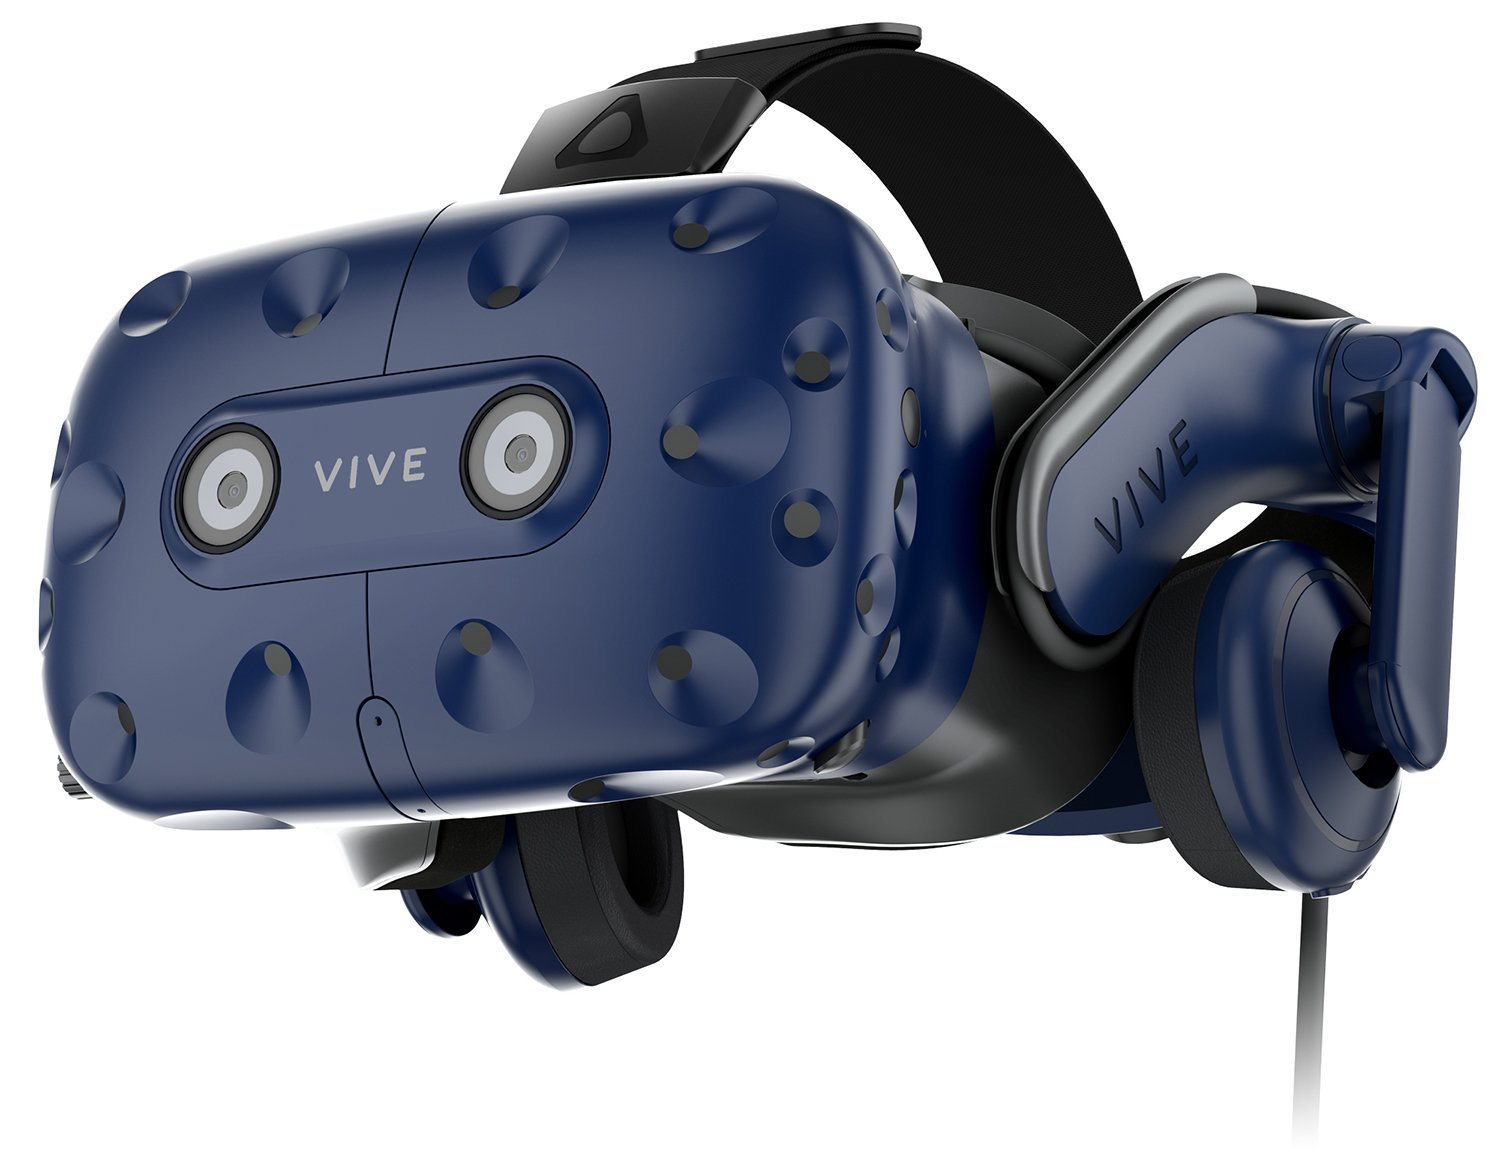 htc vive pro vr virtual reality headset HTC Vive Pro VR Virtual Reality Headset 71ALsVf2XIL